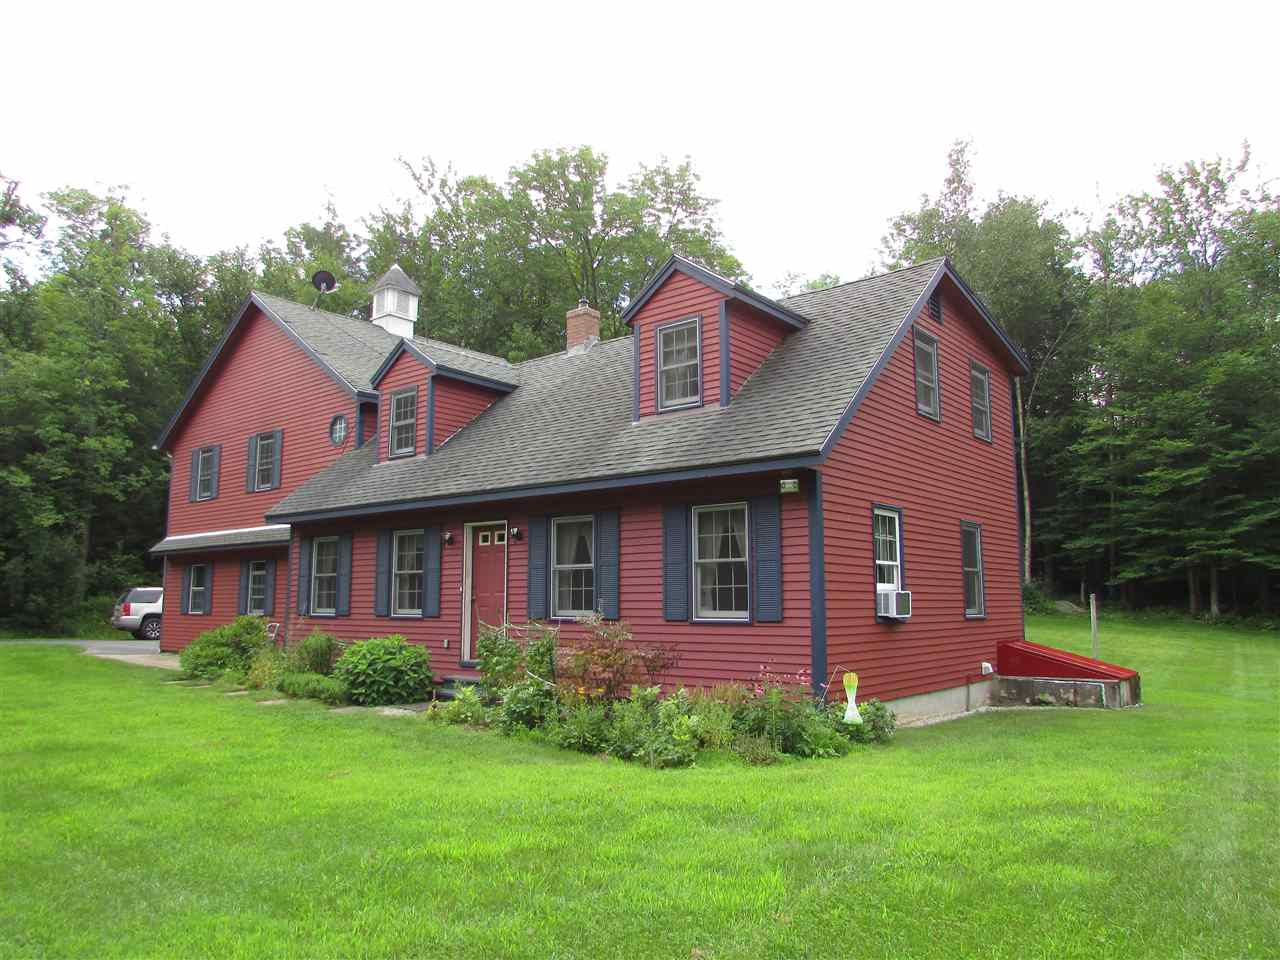 LEBANON NH Home for sale $$387,000 | $170 per sq.ft.